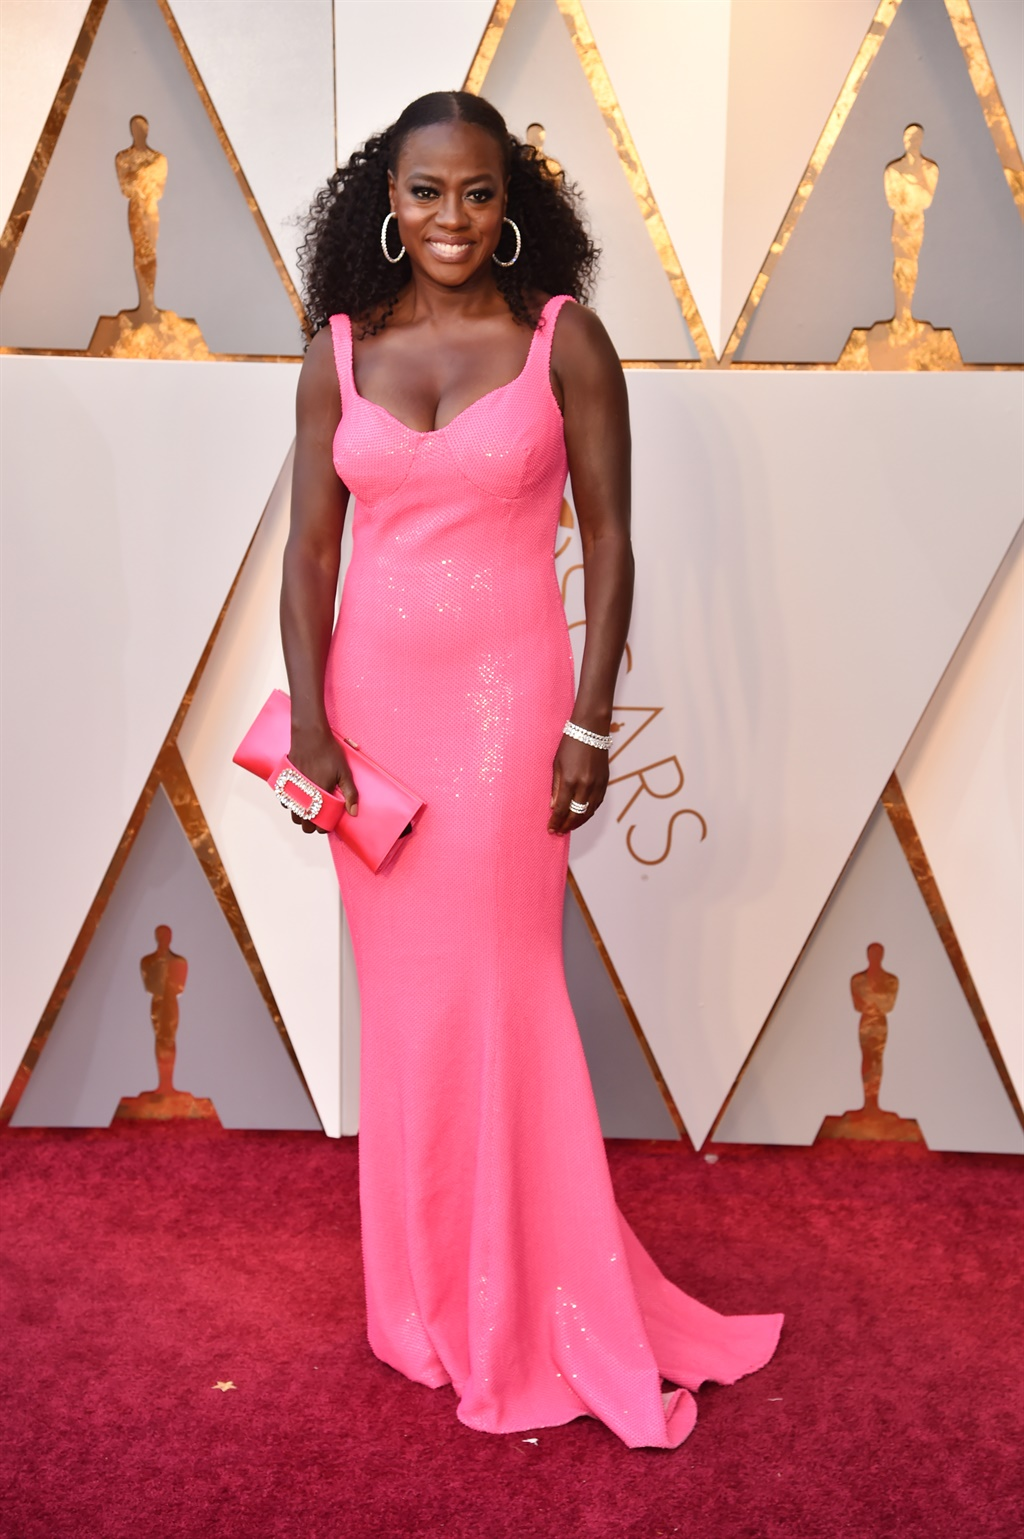 Oscars red carpet 2018 - all the best looks you have to see